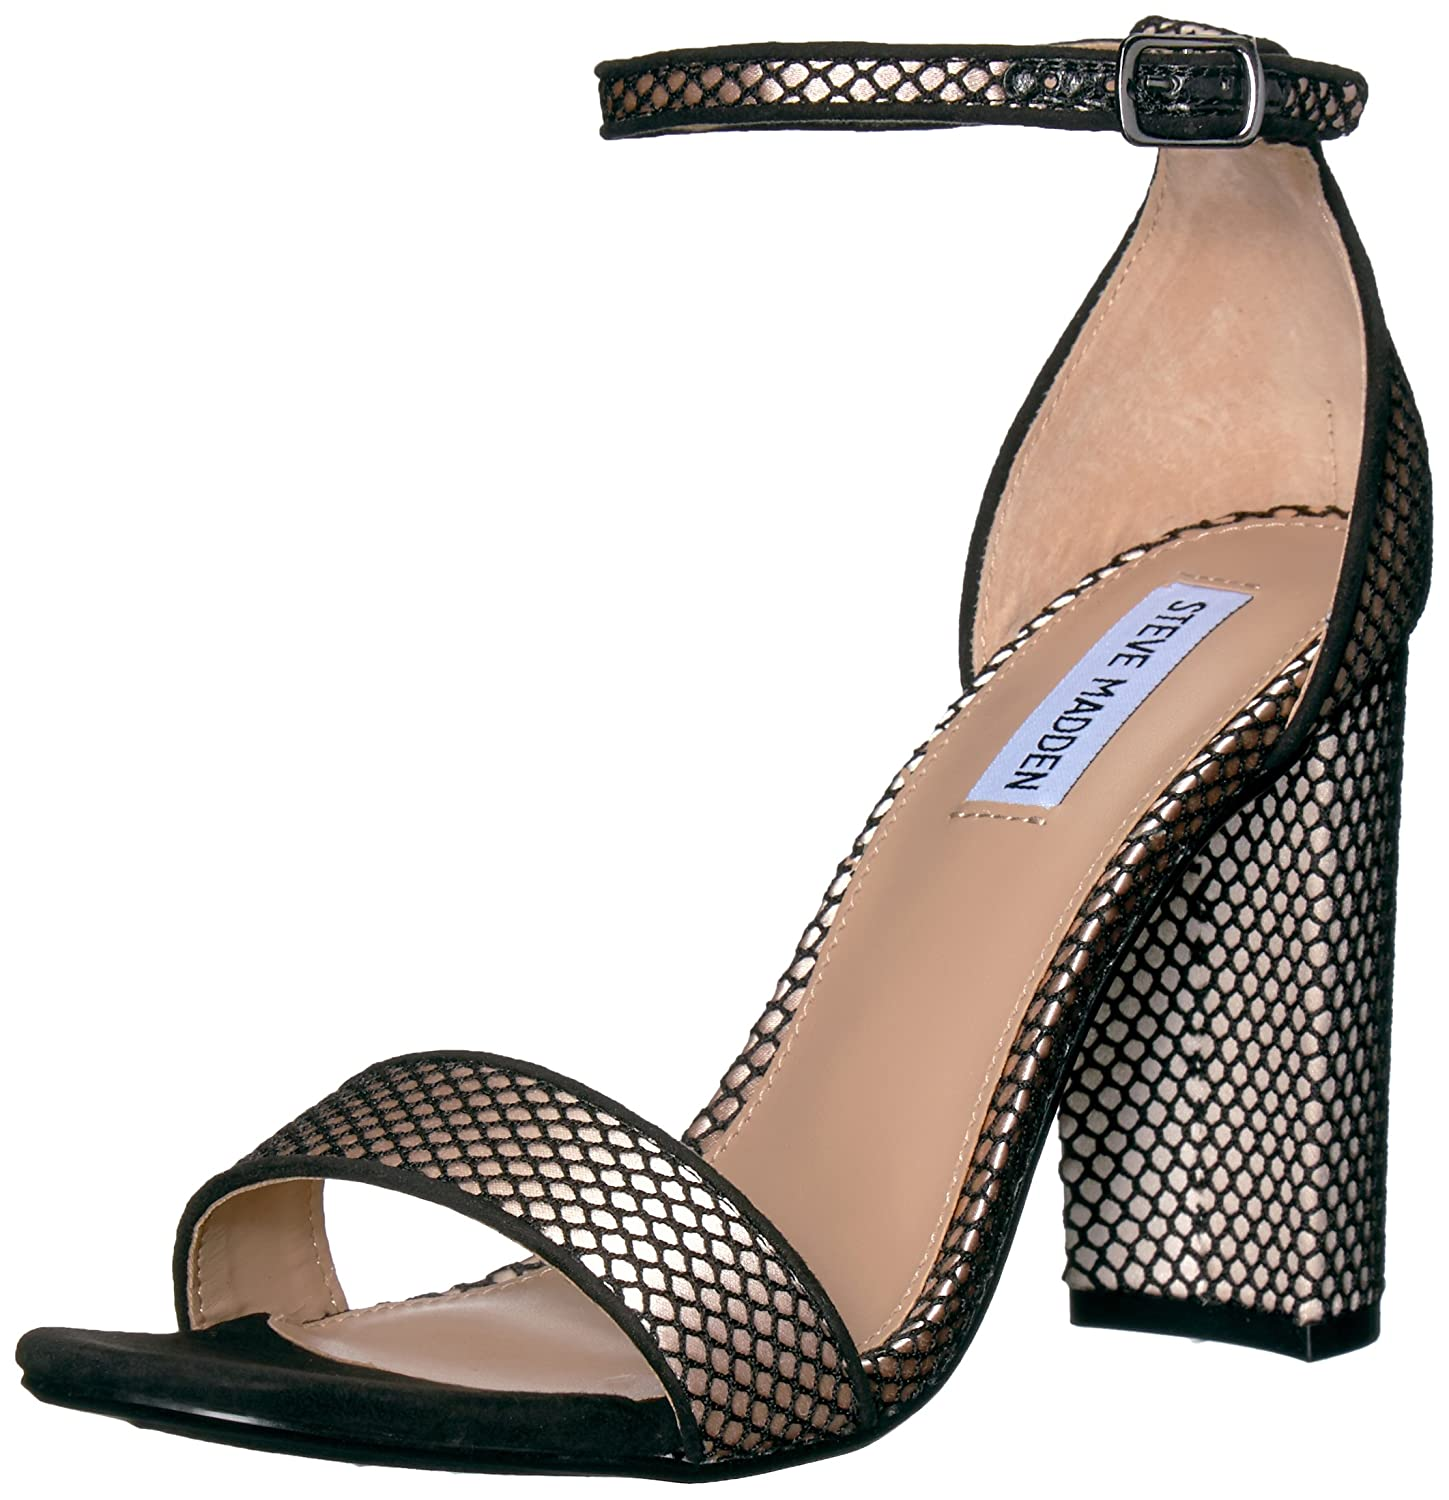 Steve Madden Women's B(M) Carrson Dress Sandal B073JR4QV1 7 B(M) Women's US|Black Mesh d68f97